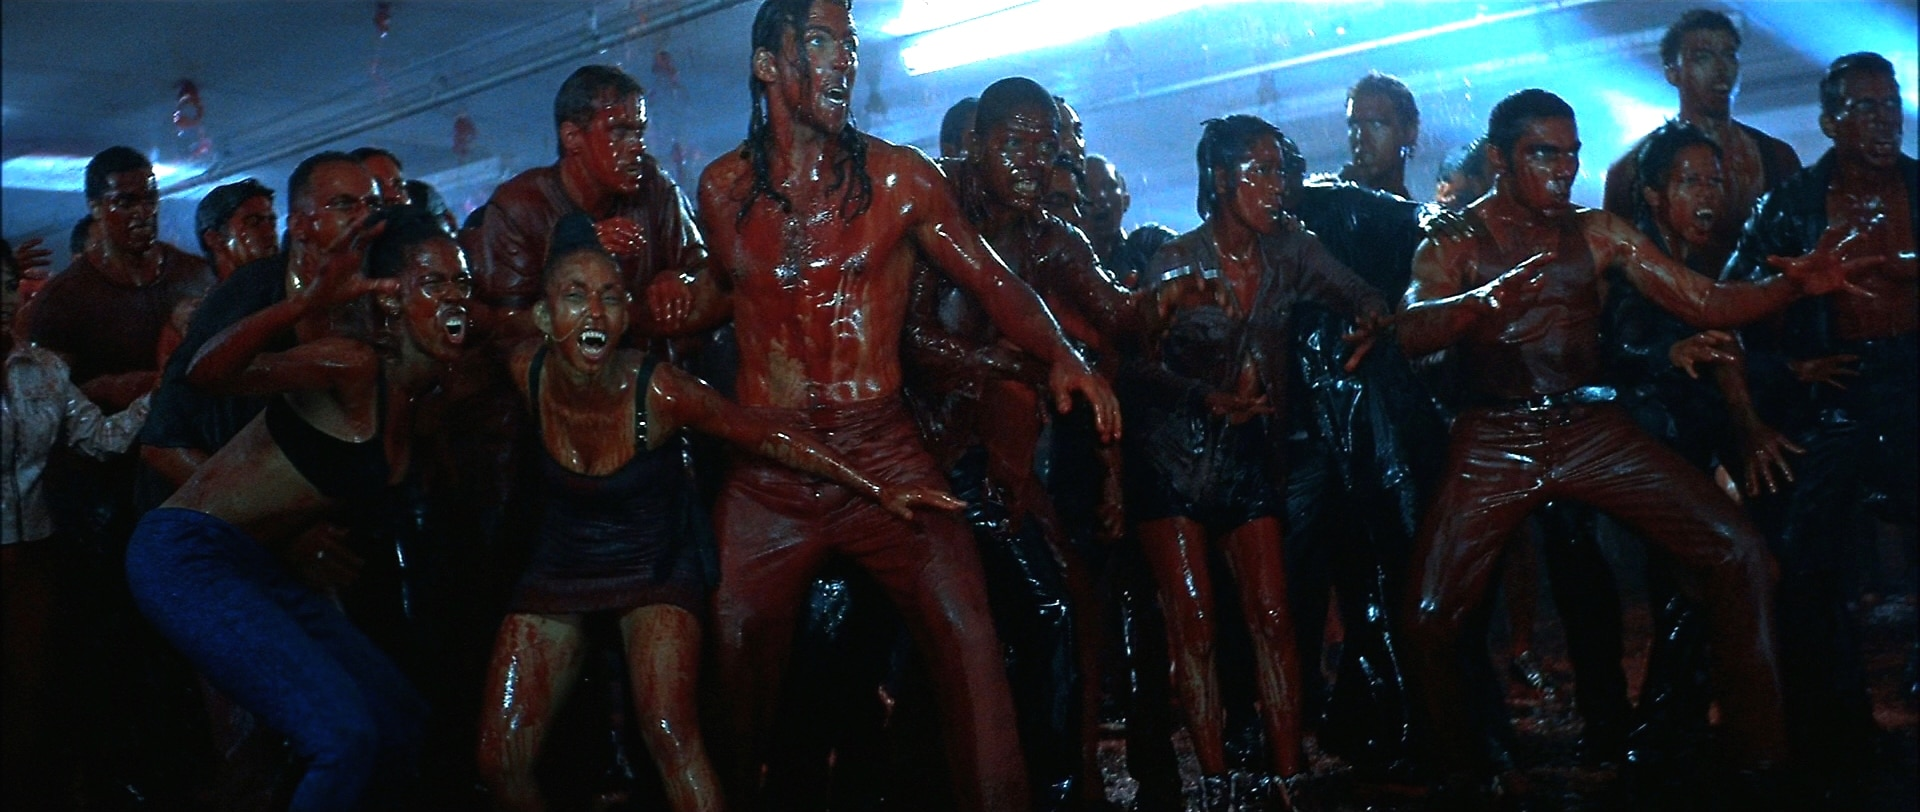 Blood Rave - Amsterdam Plans Its Very Own Blade-Inspired Blood Rave